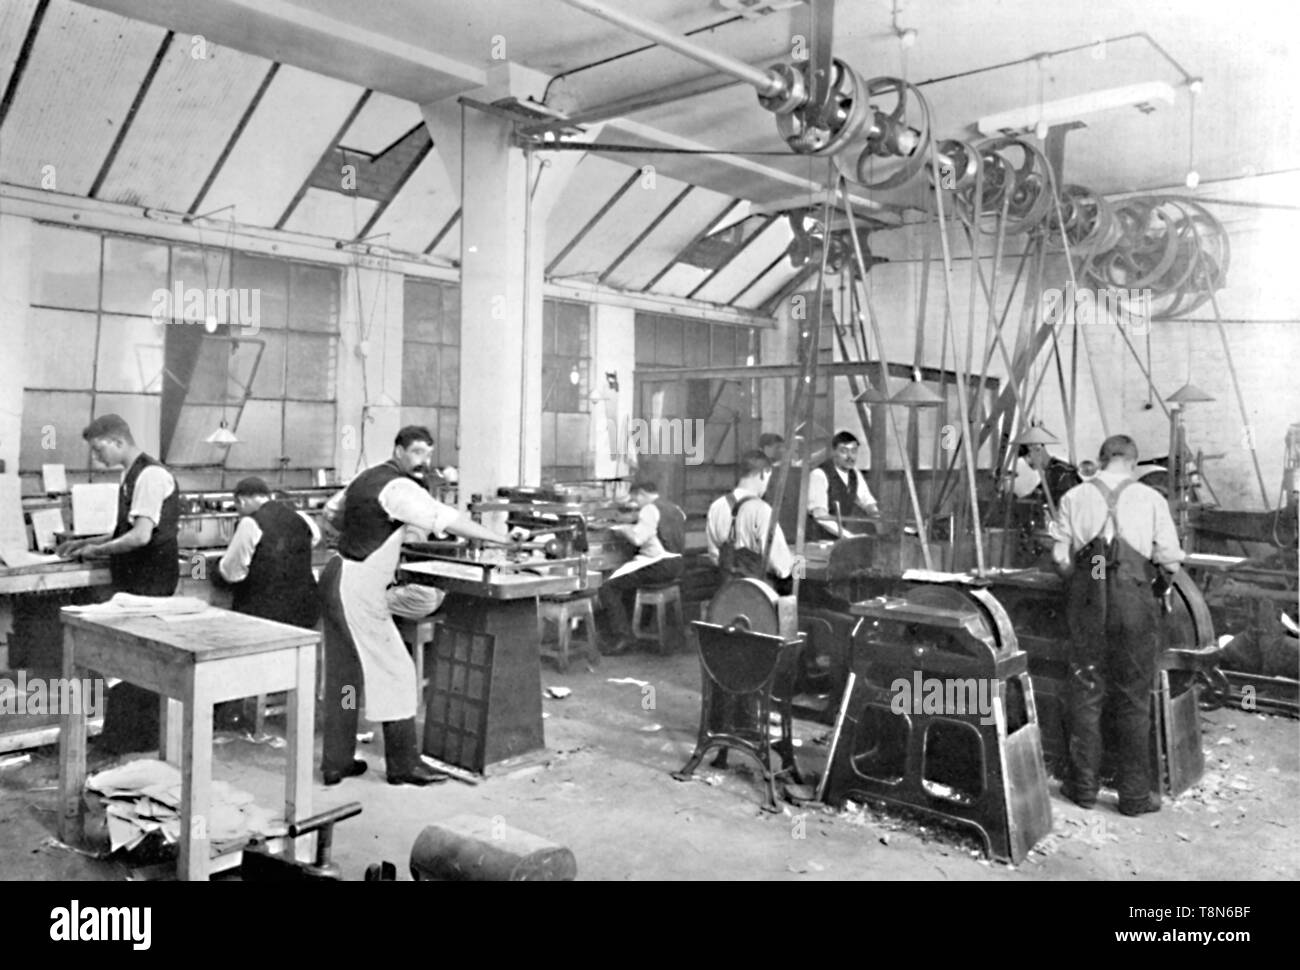 'Dalziel Foundry Limited. - Earl Street Premises. Finishers and Sundry Finishing Plant', 1909. Creator: Unknown. - Stock Image